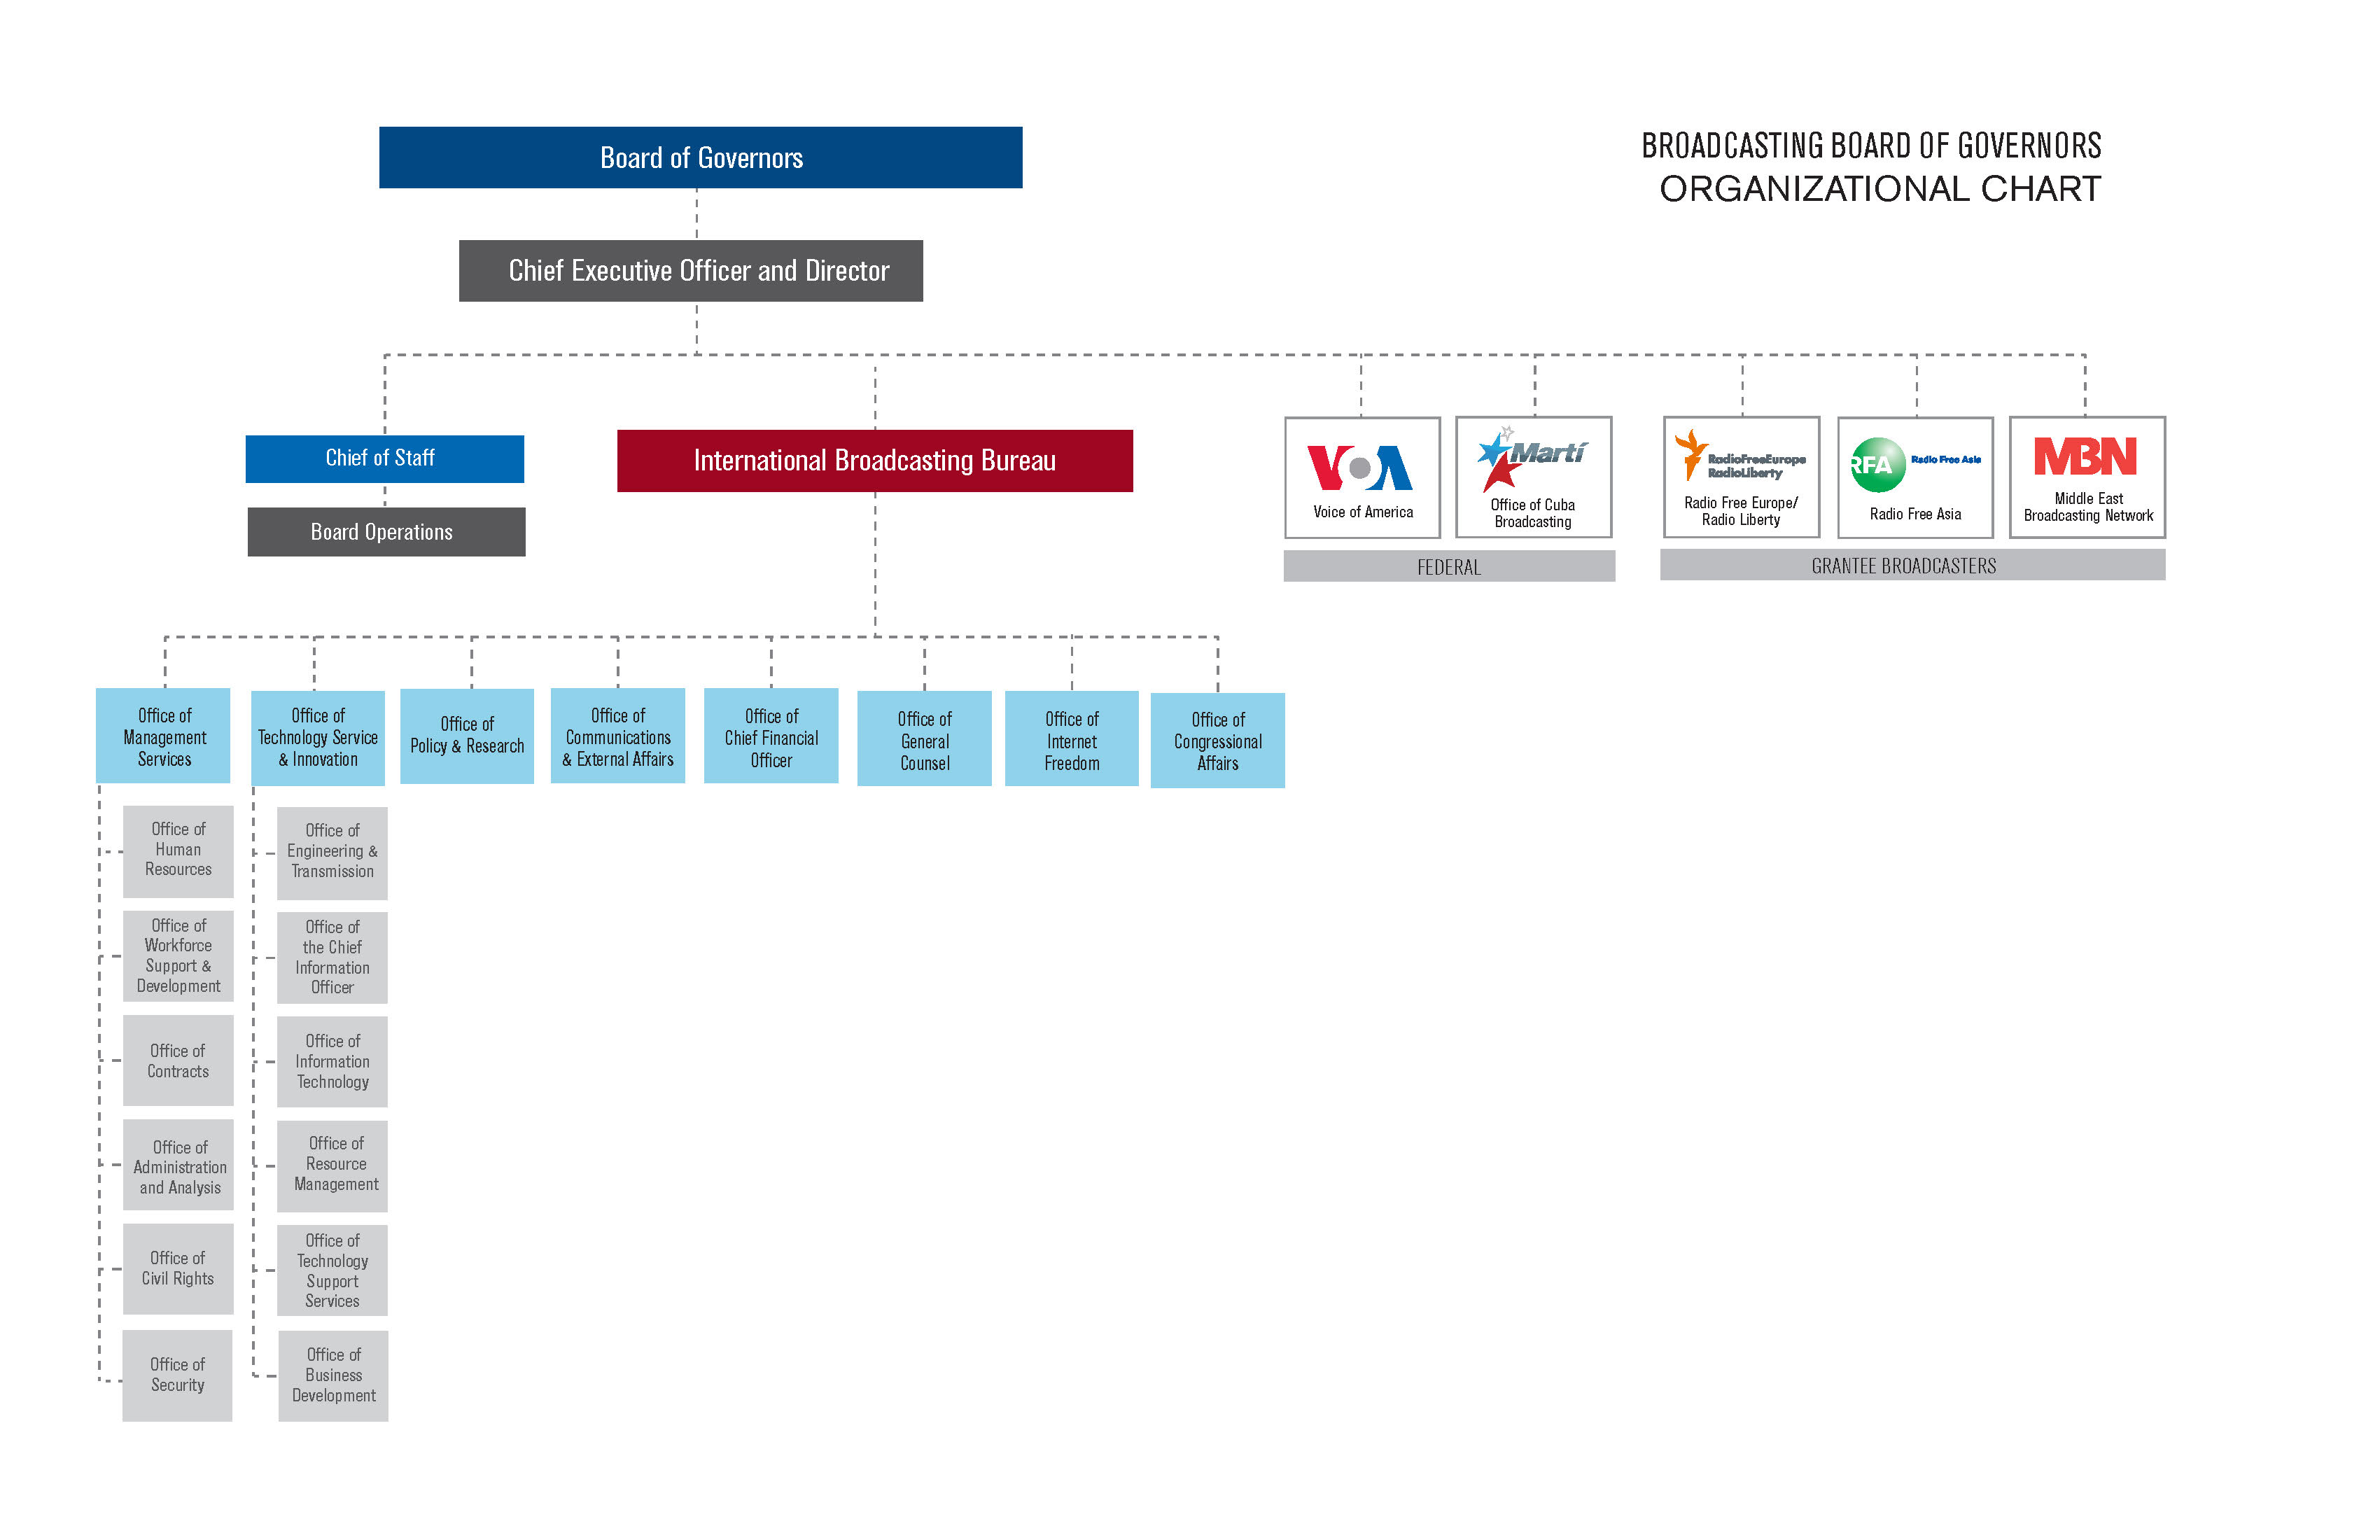 Organizational chart of the Broadcasting Board of Governors